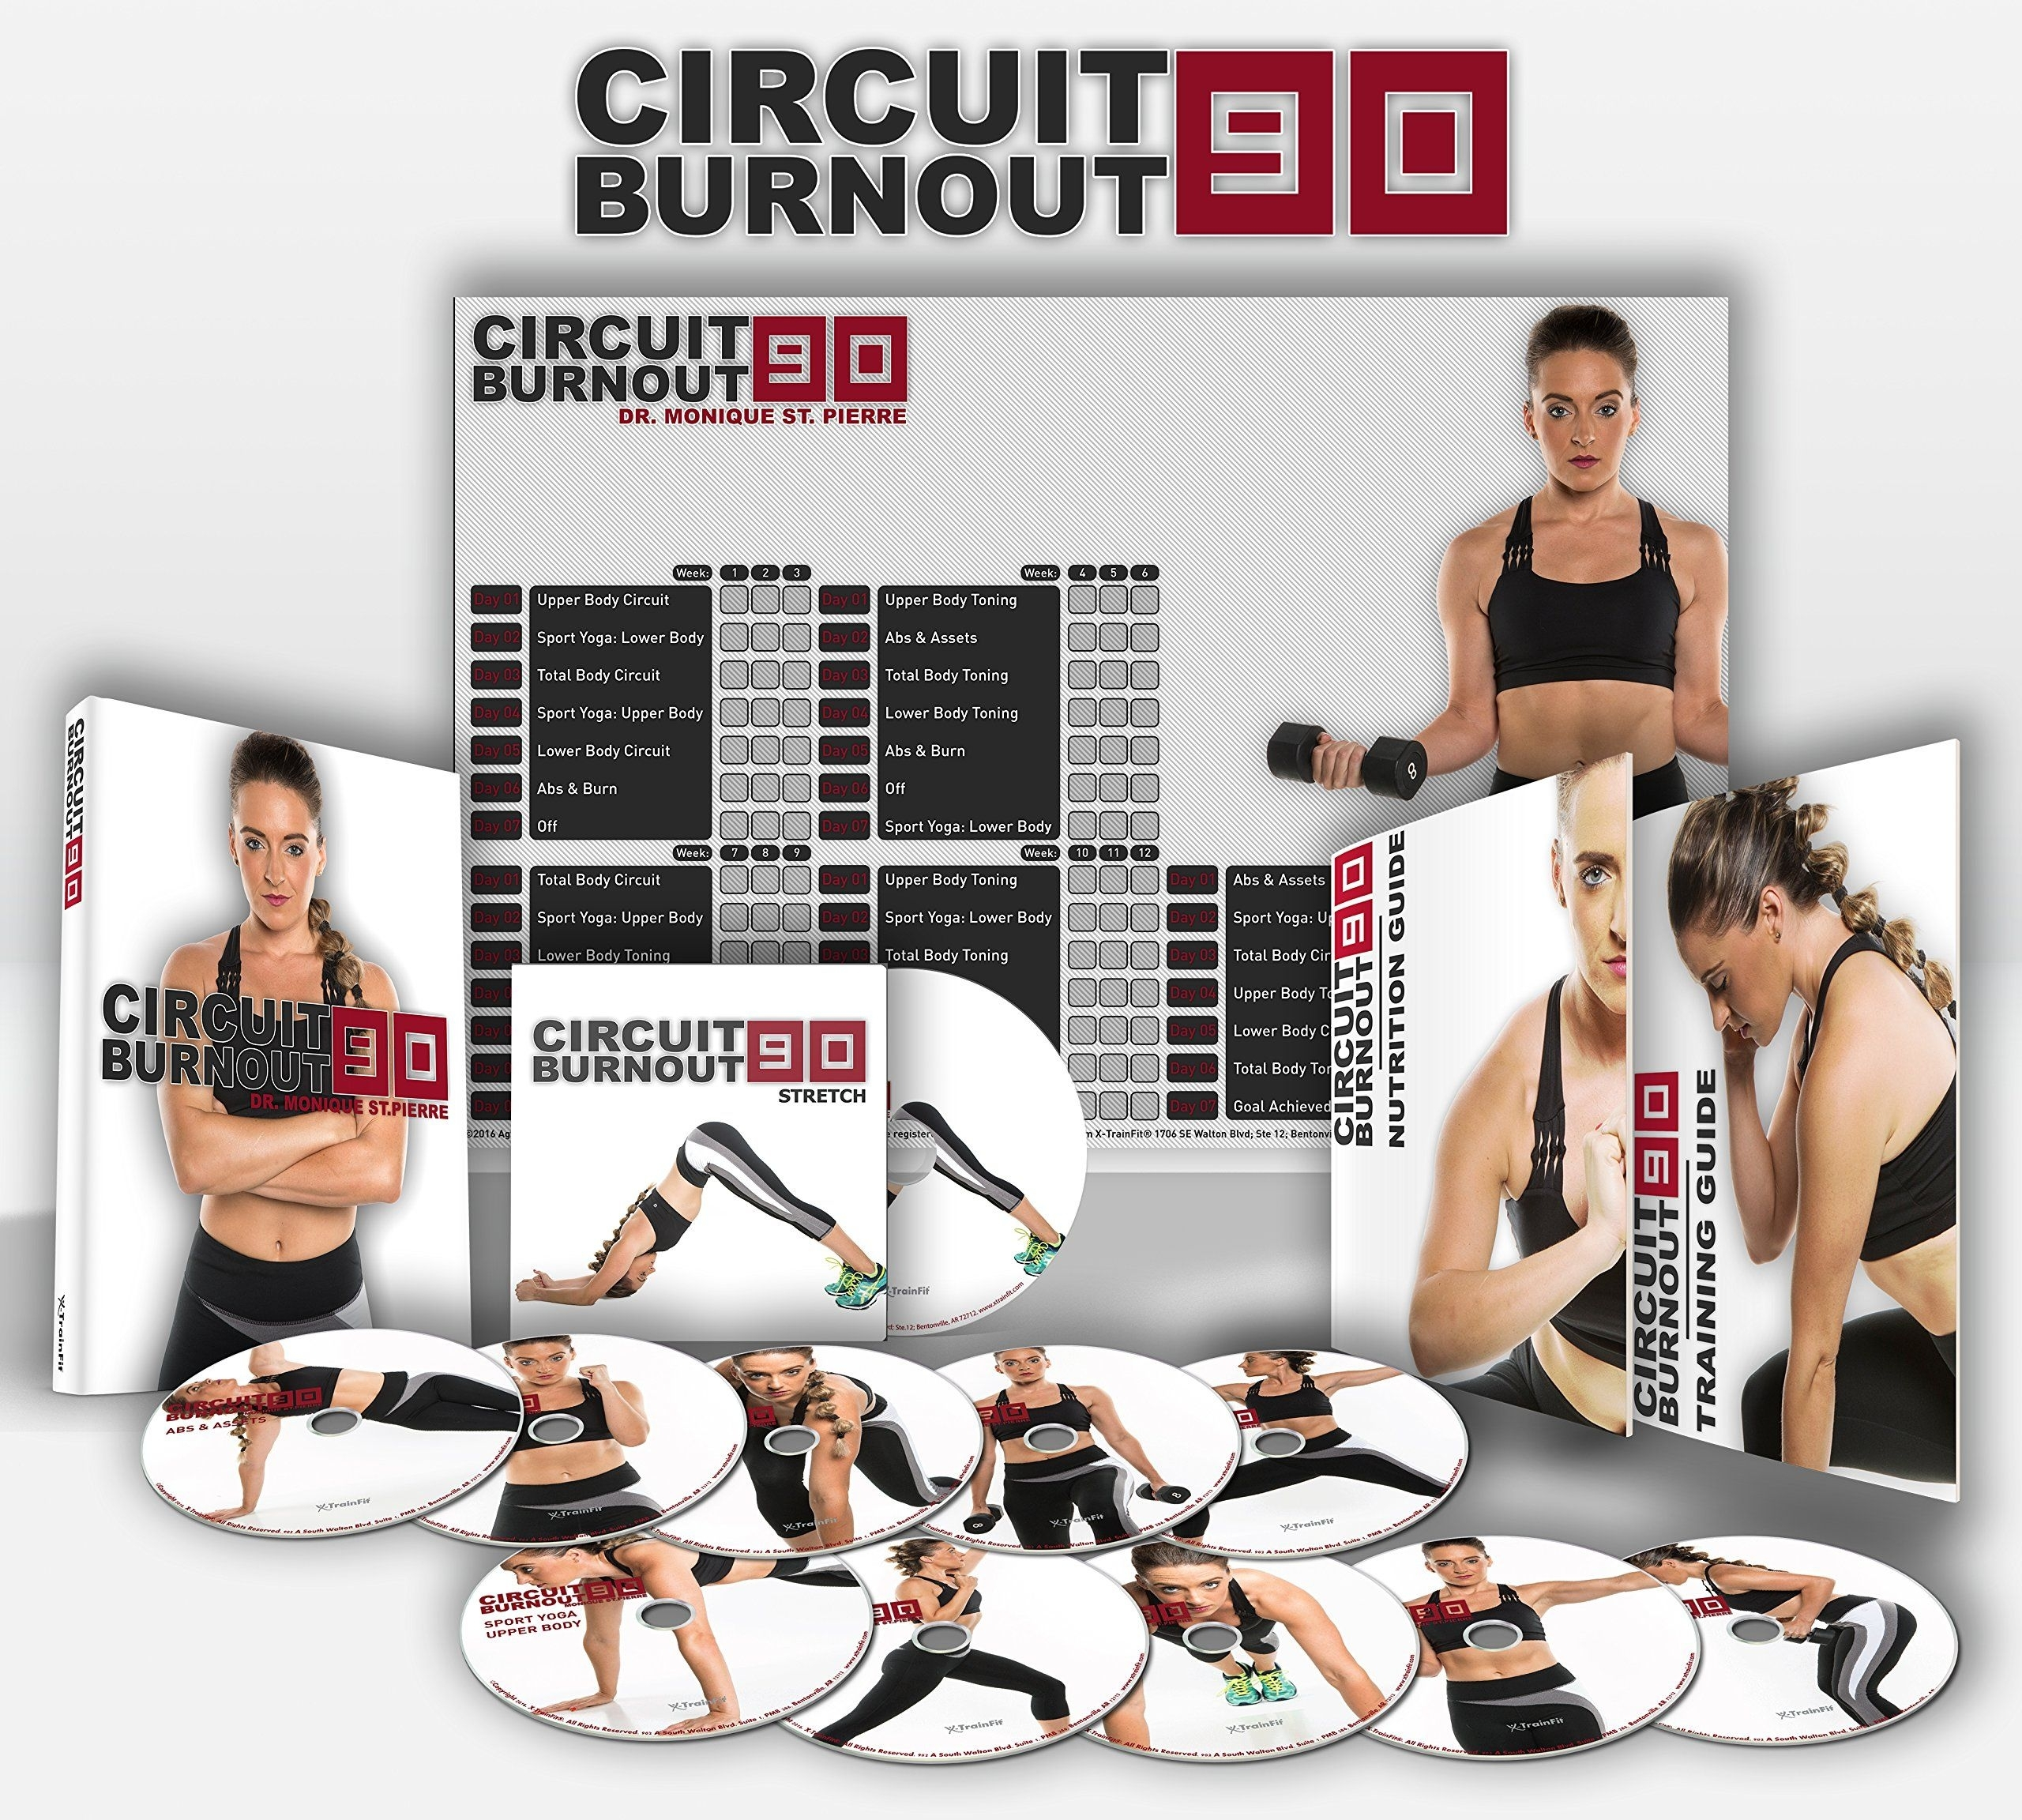 Circuit Burnout 90: 90 Day Dvd Workout Program With 10 1